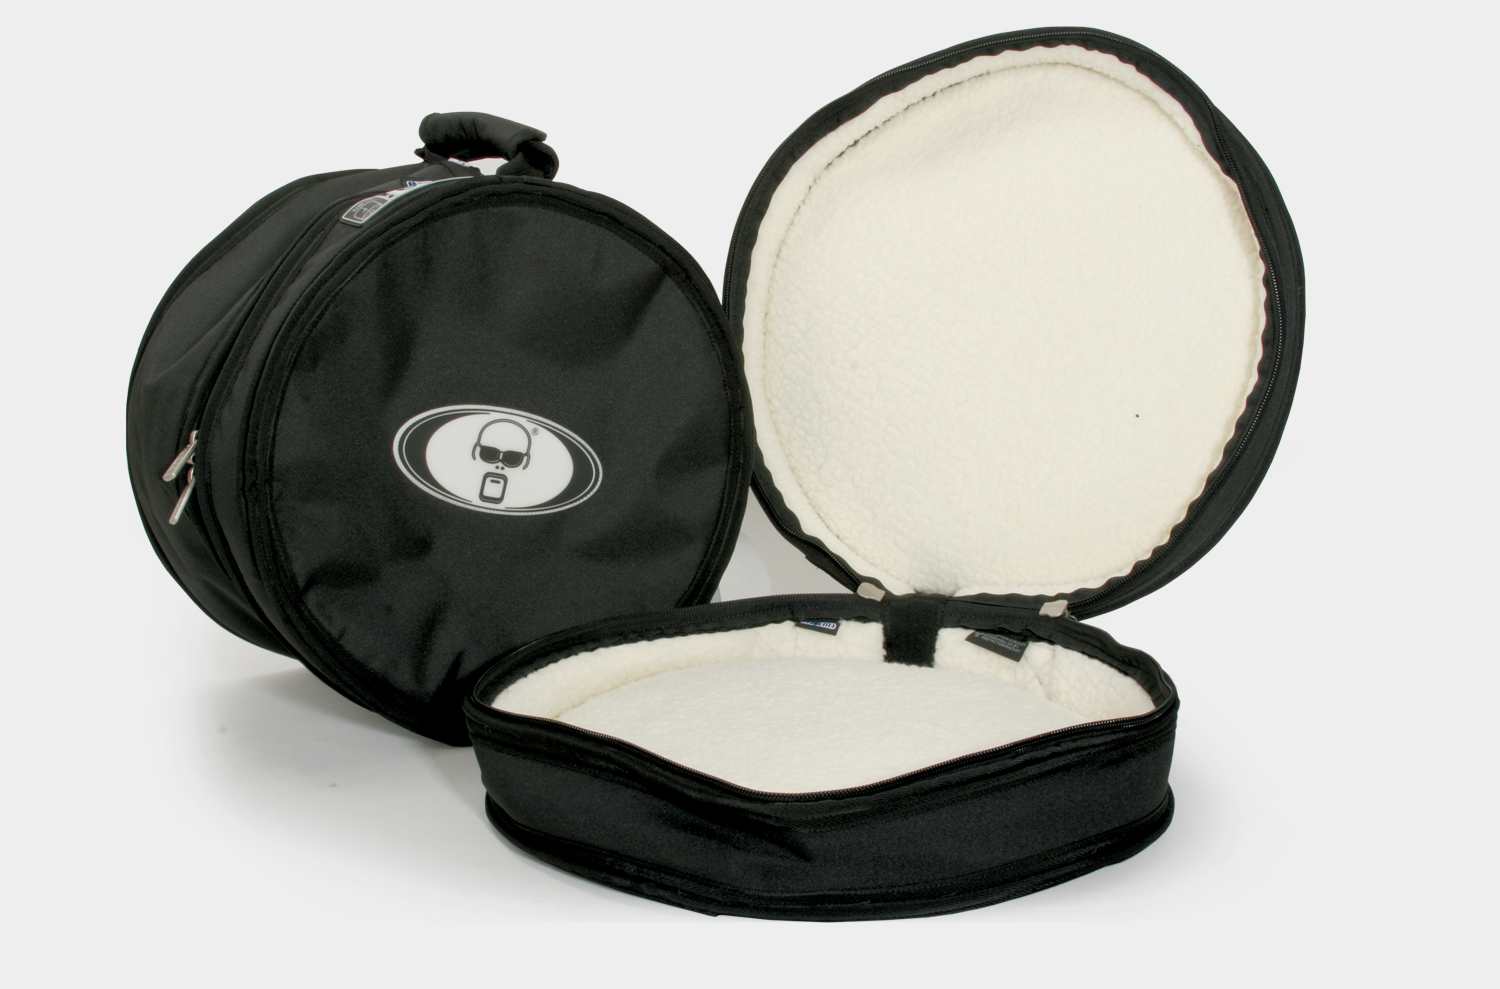 Protection Racket Bass Drum Bag 1822